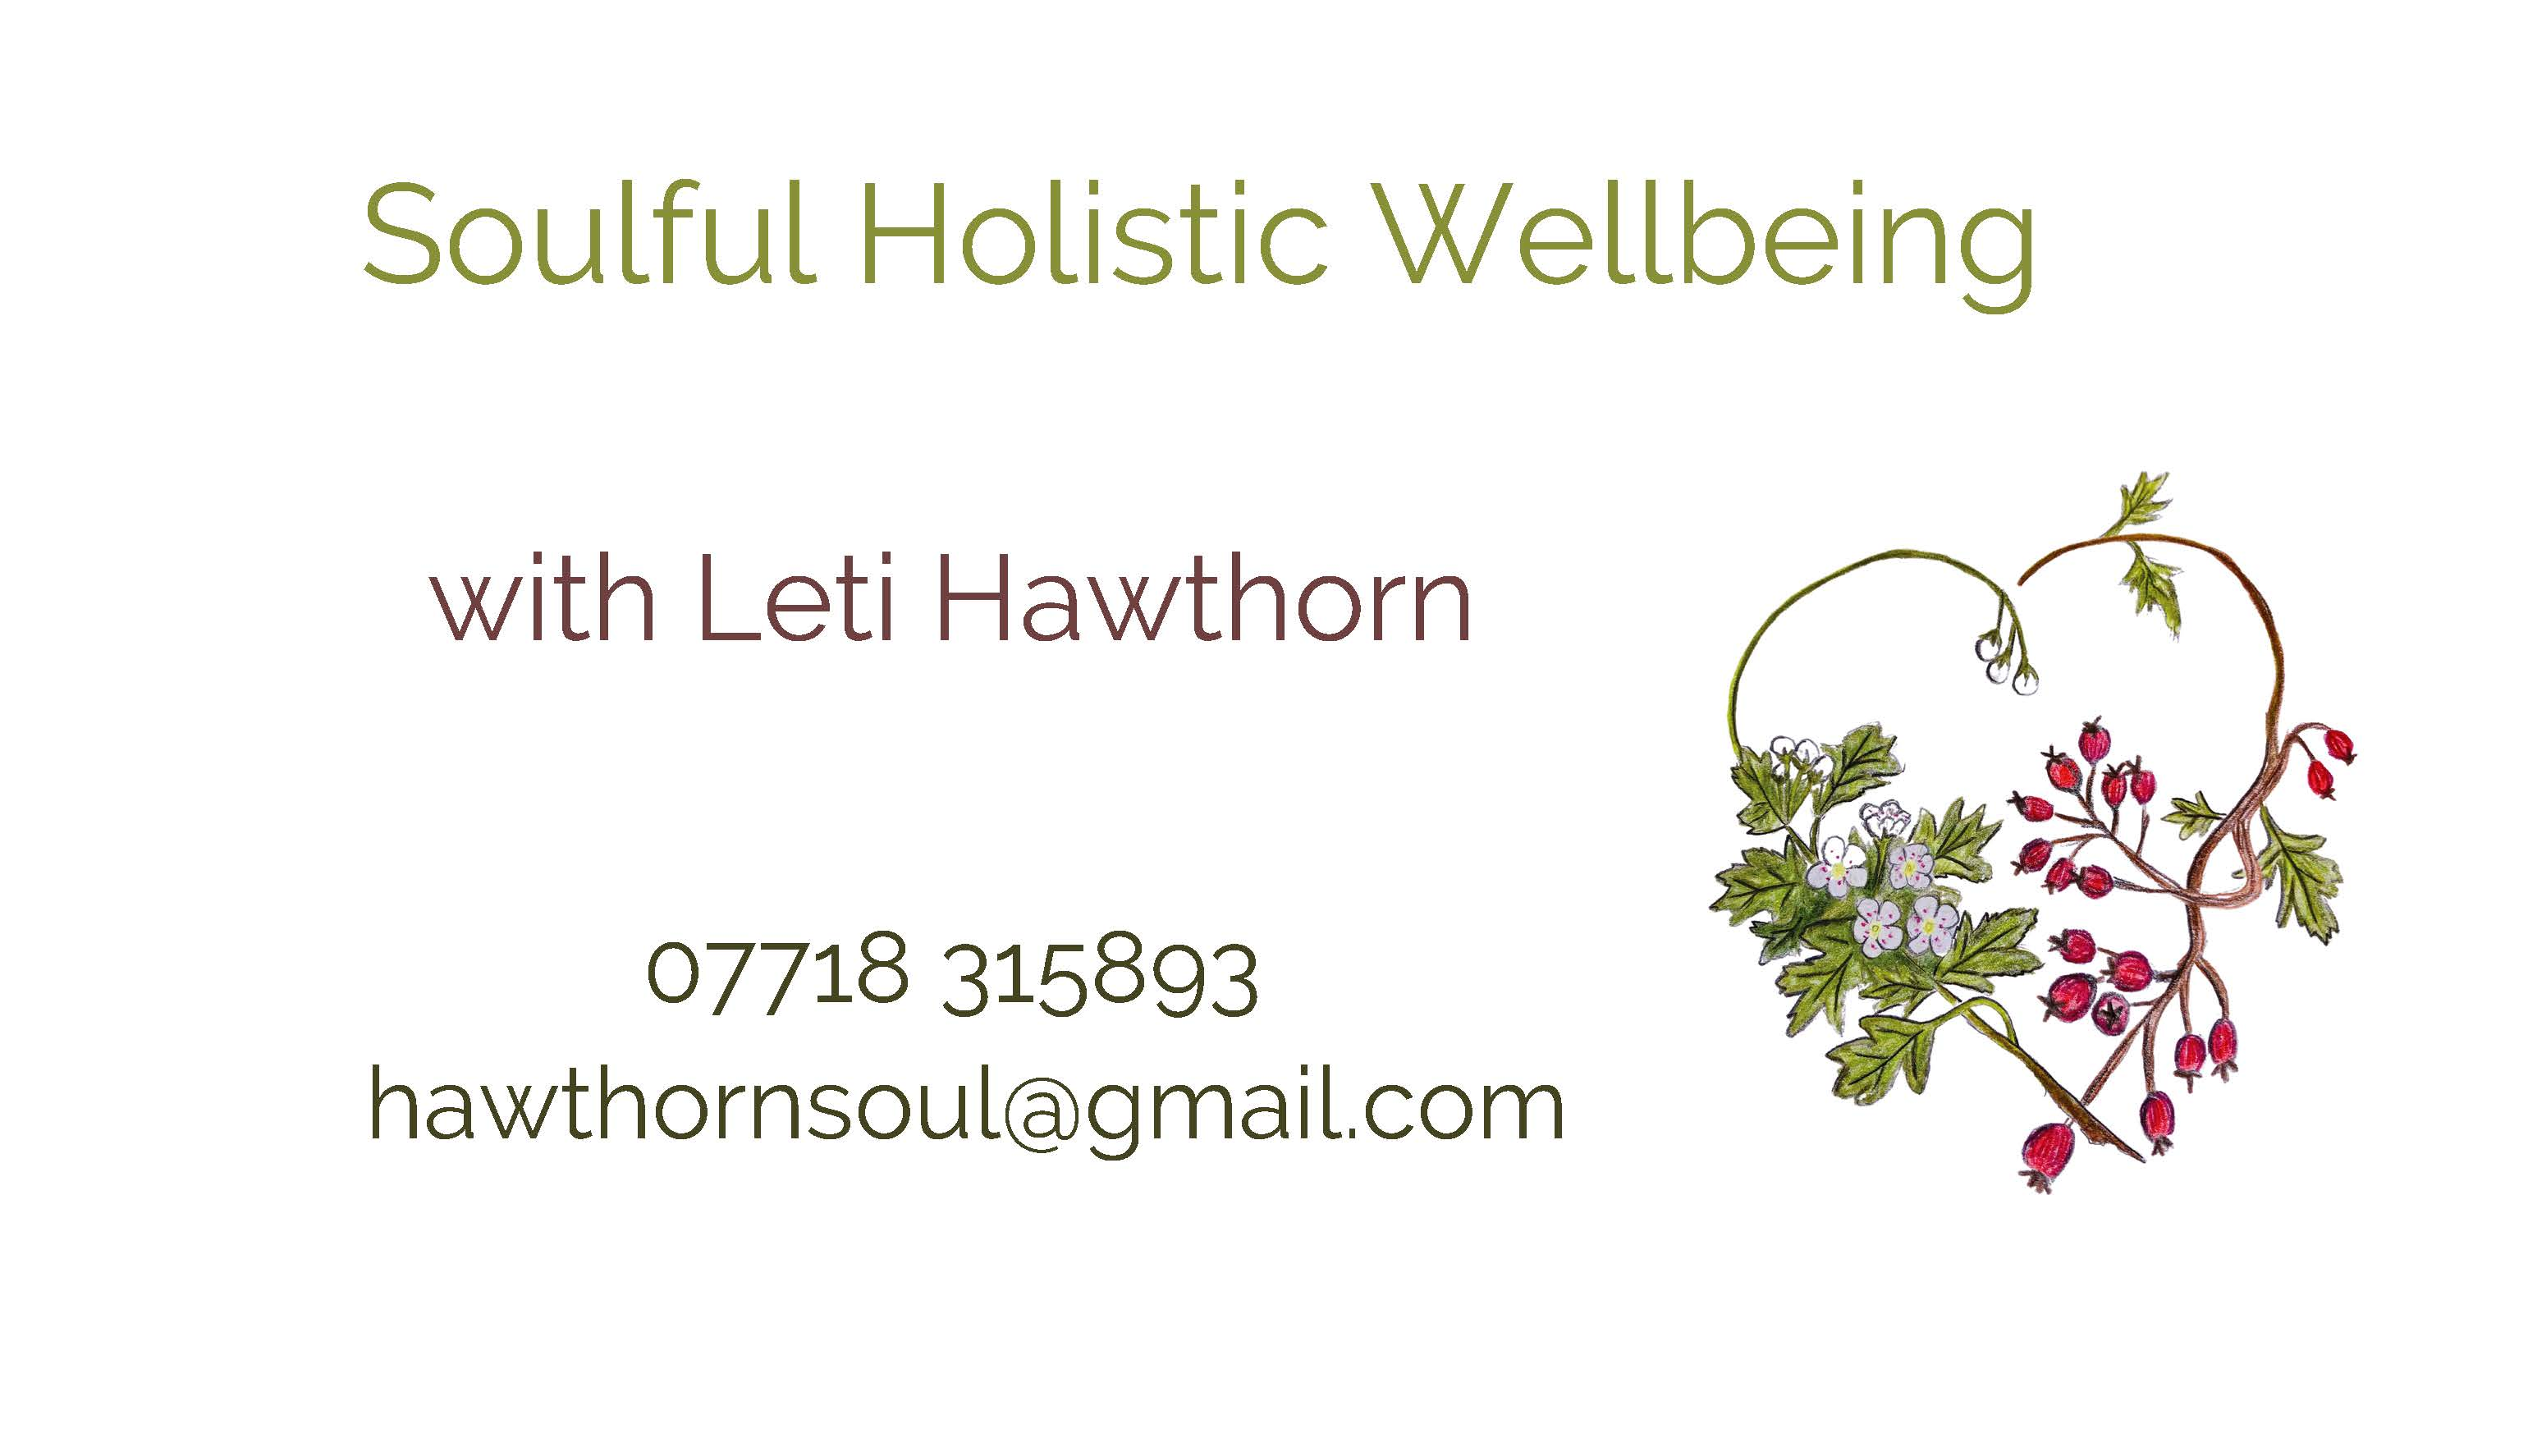 Soulful Holistic Wellbeing Page 1 1